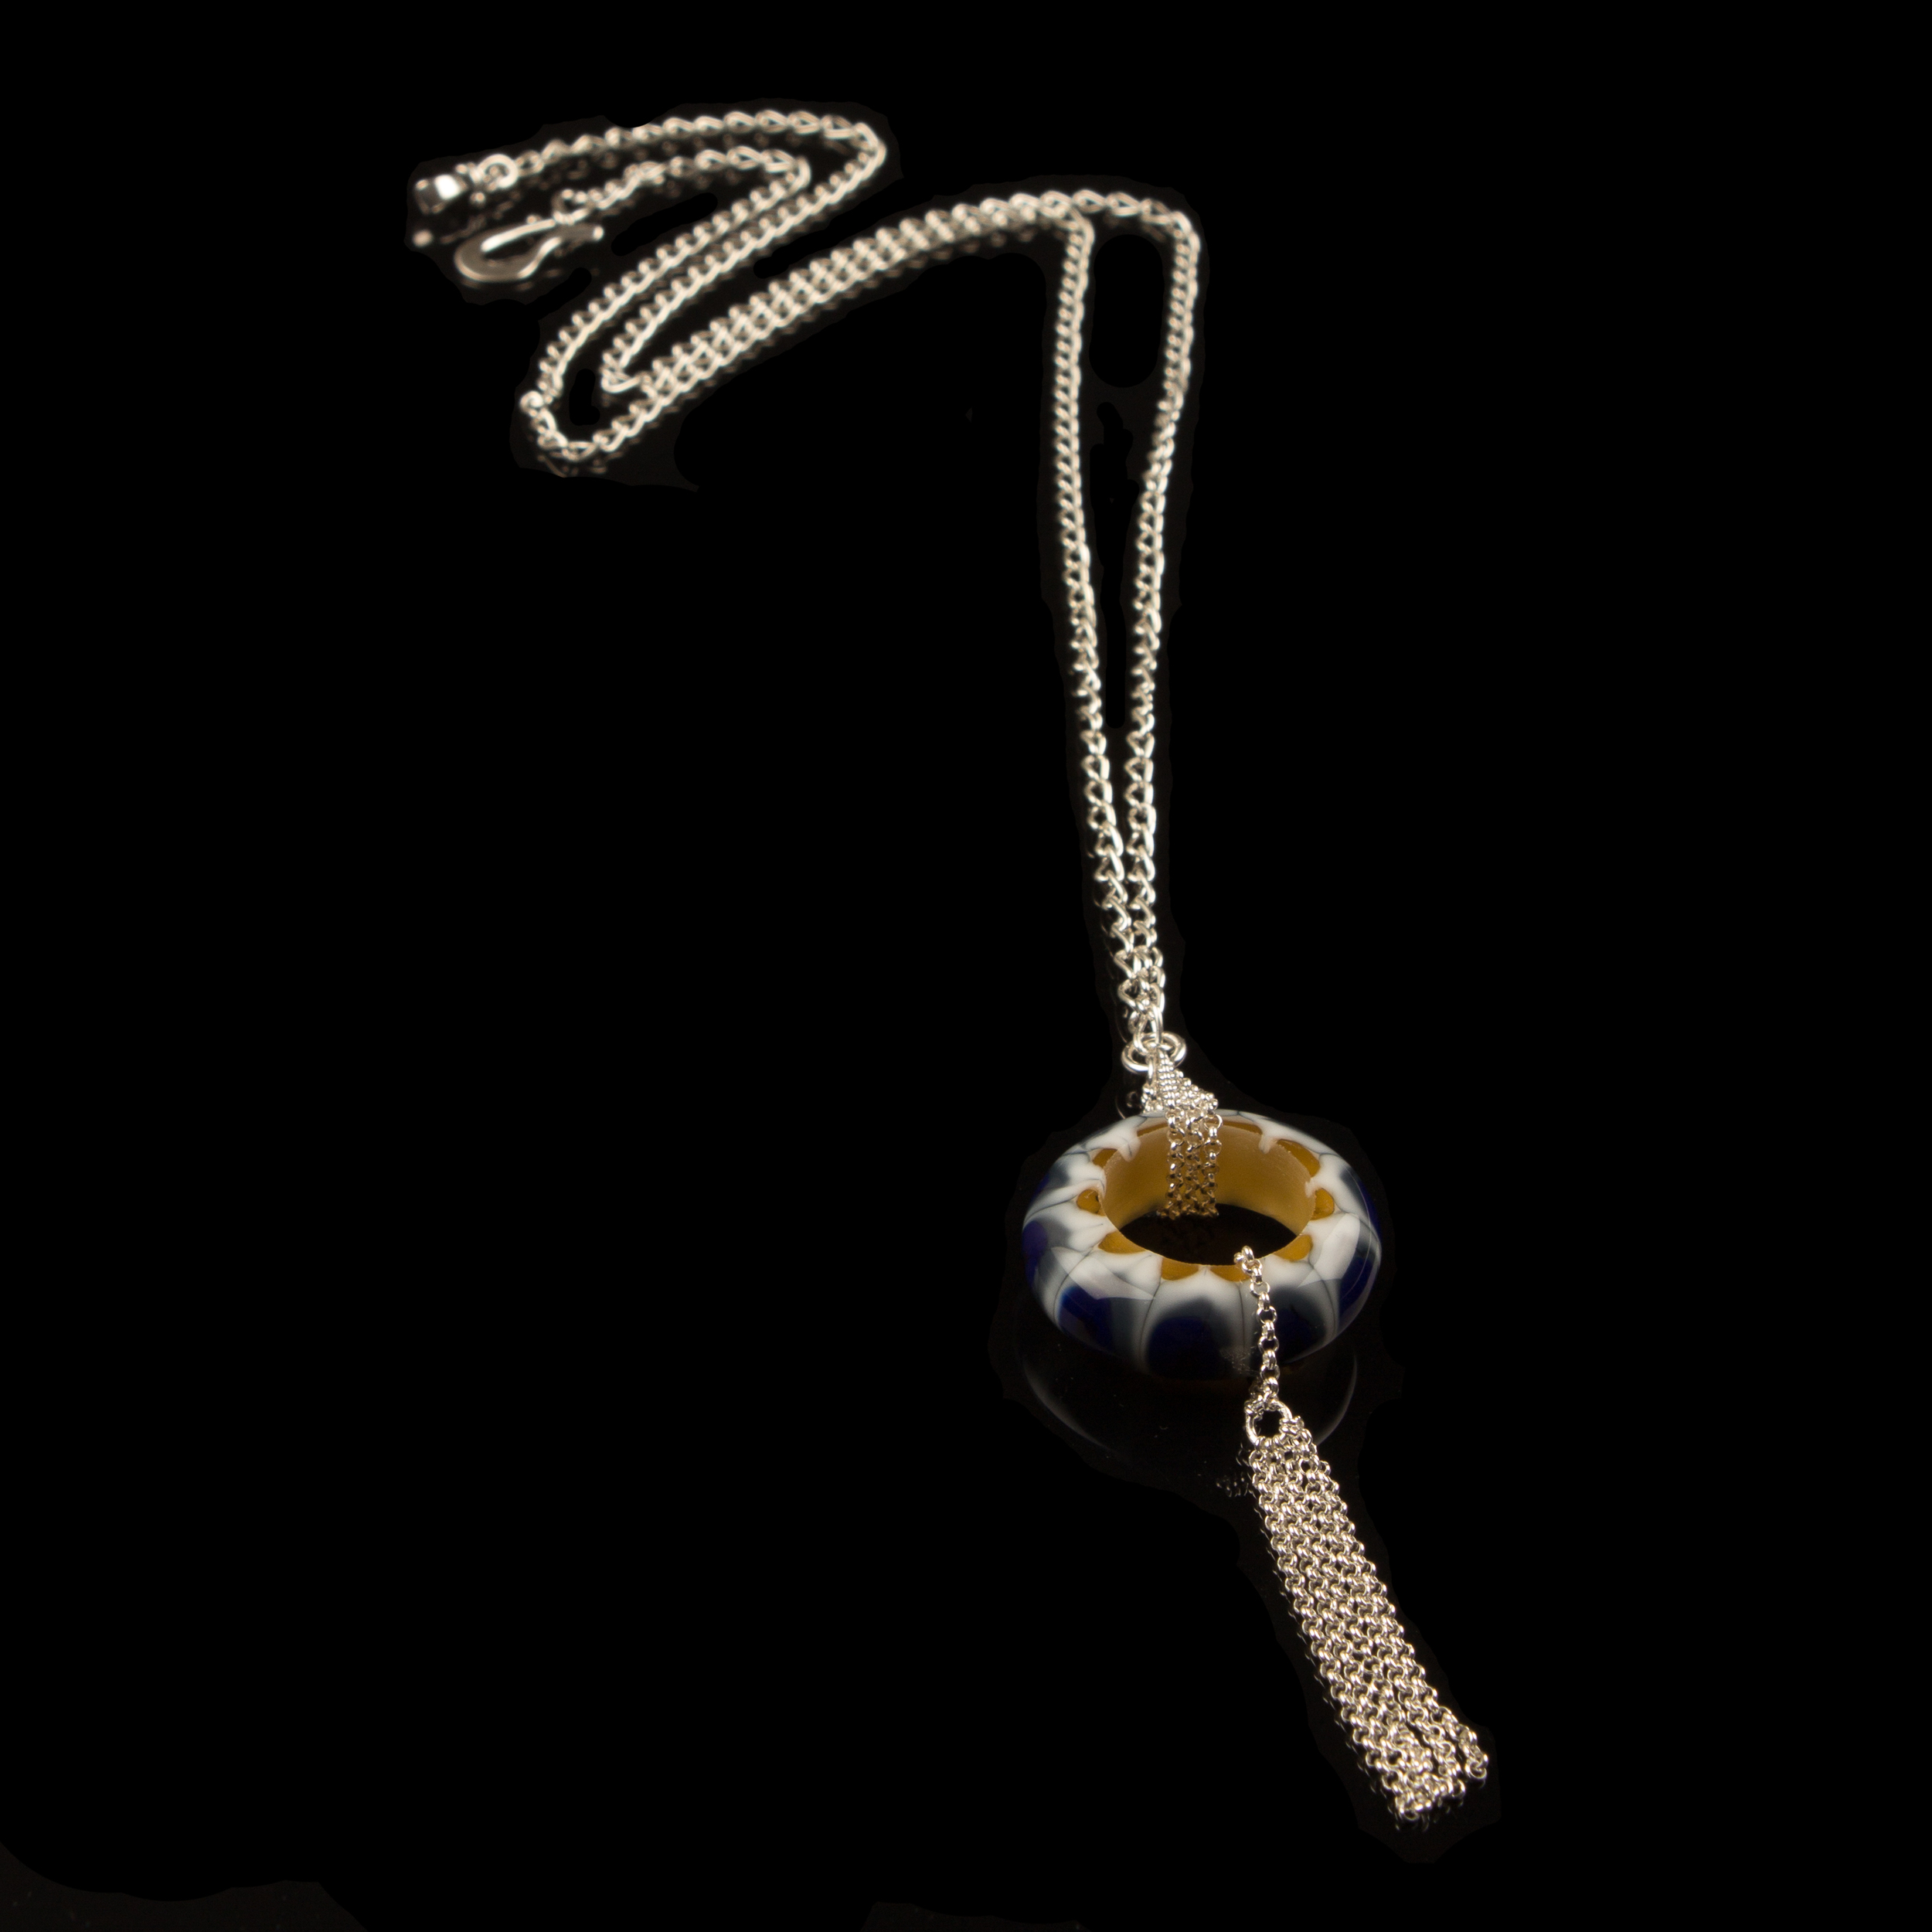 Hand made disc glass pendant necklace